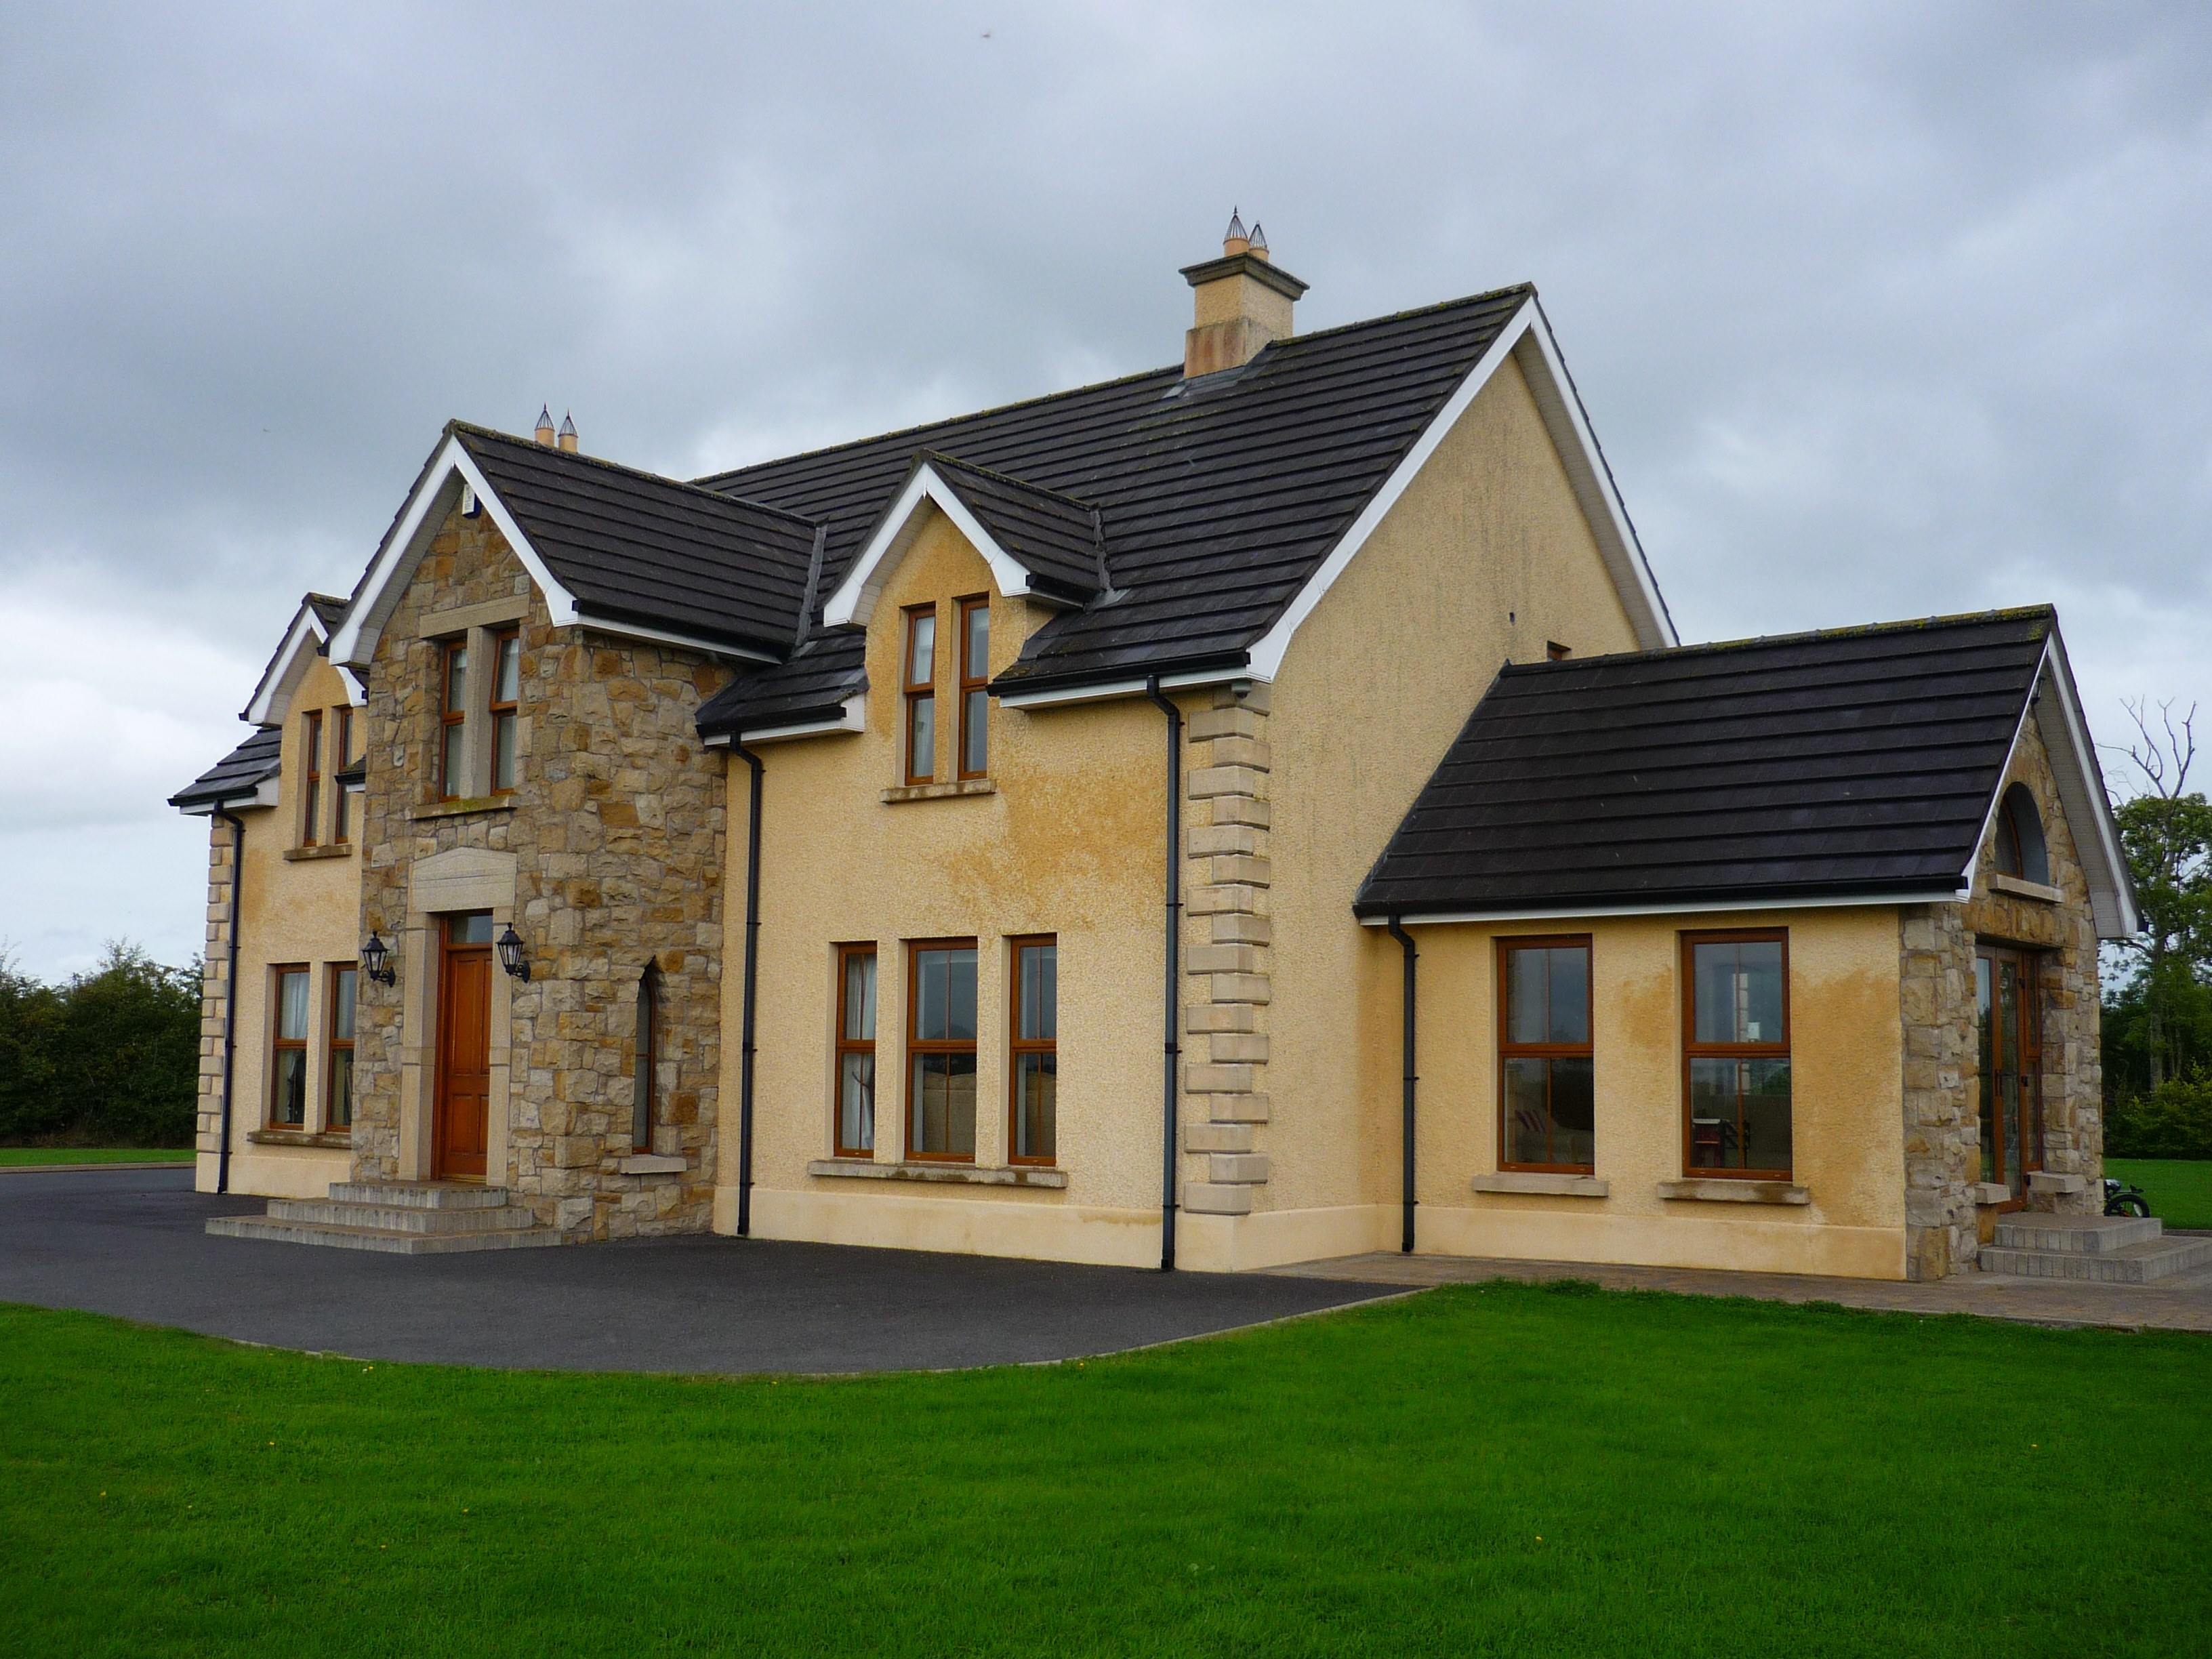 D law son claudy stone built to house in stoneyford for Stone faced houses